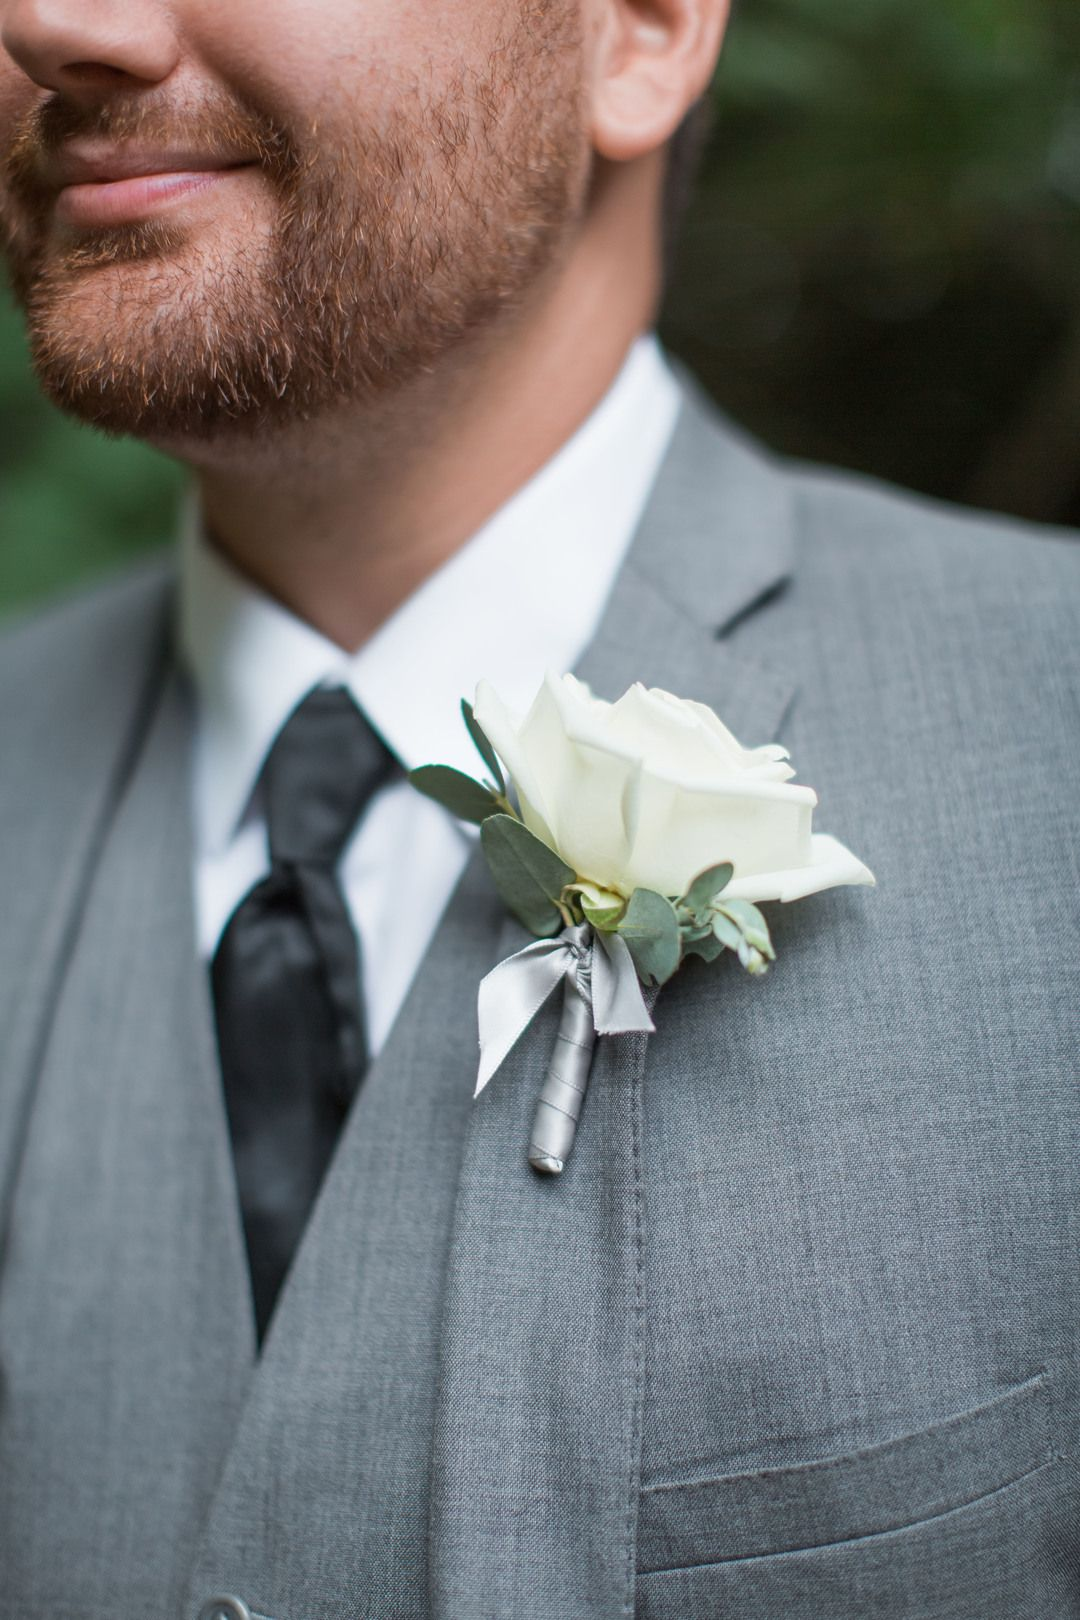 The Smarter Way to Wed | Wedding boutonniere, White rose boutonniere ...